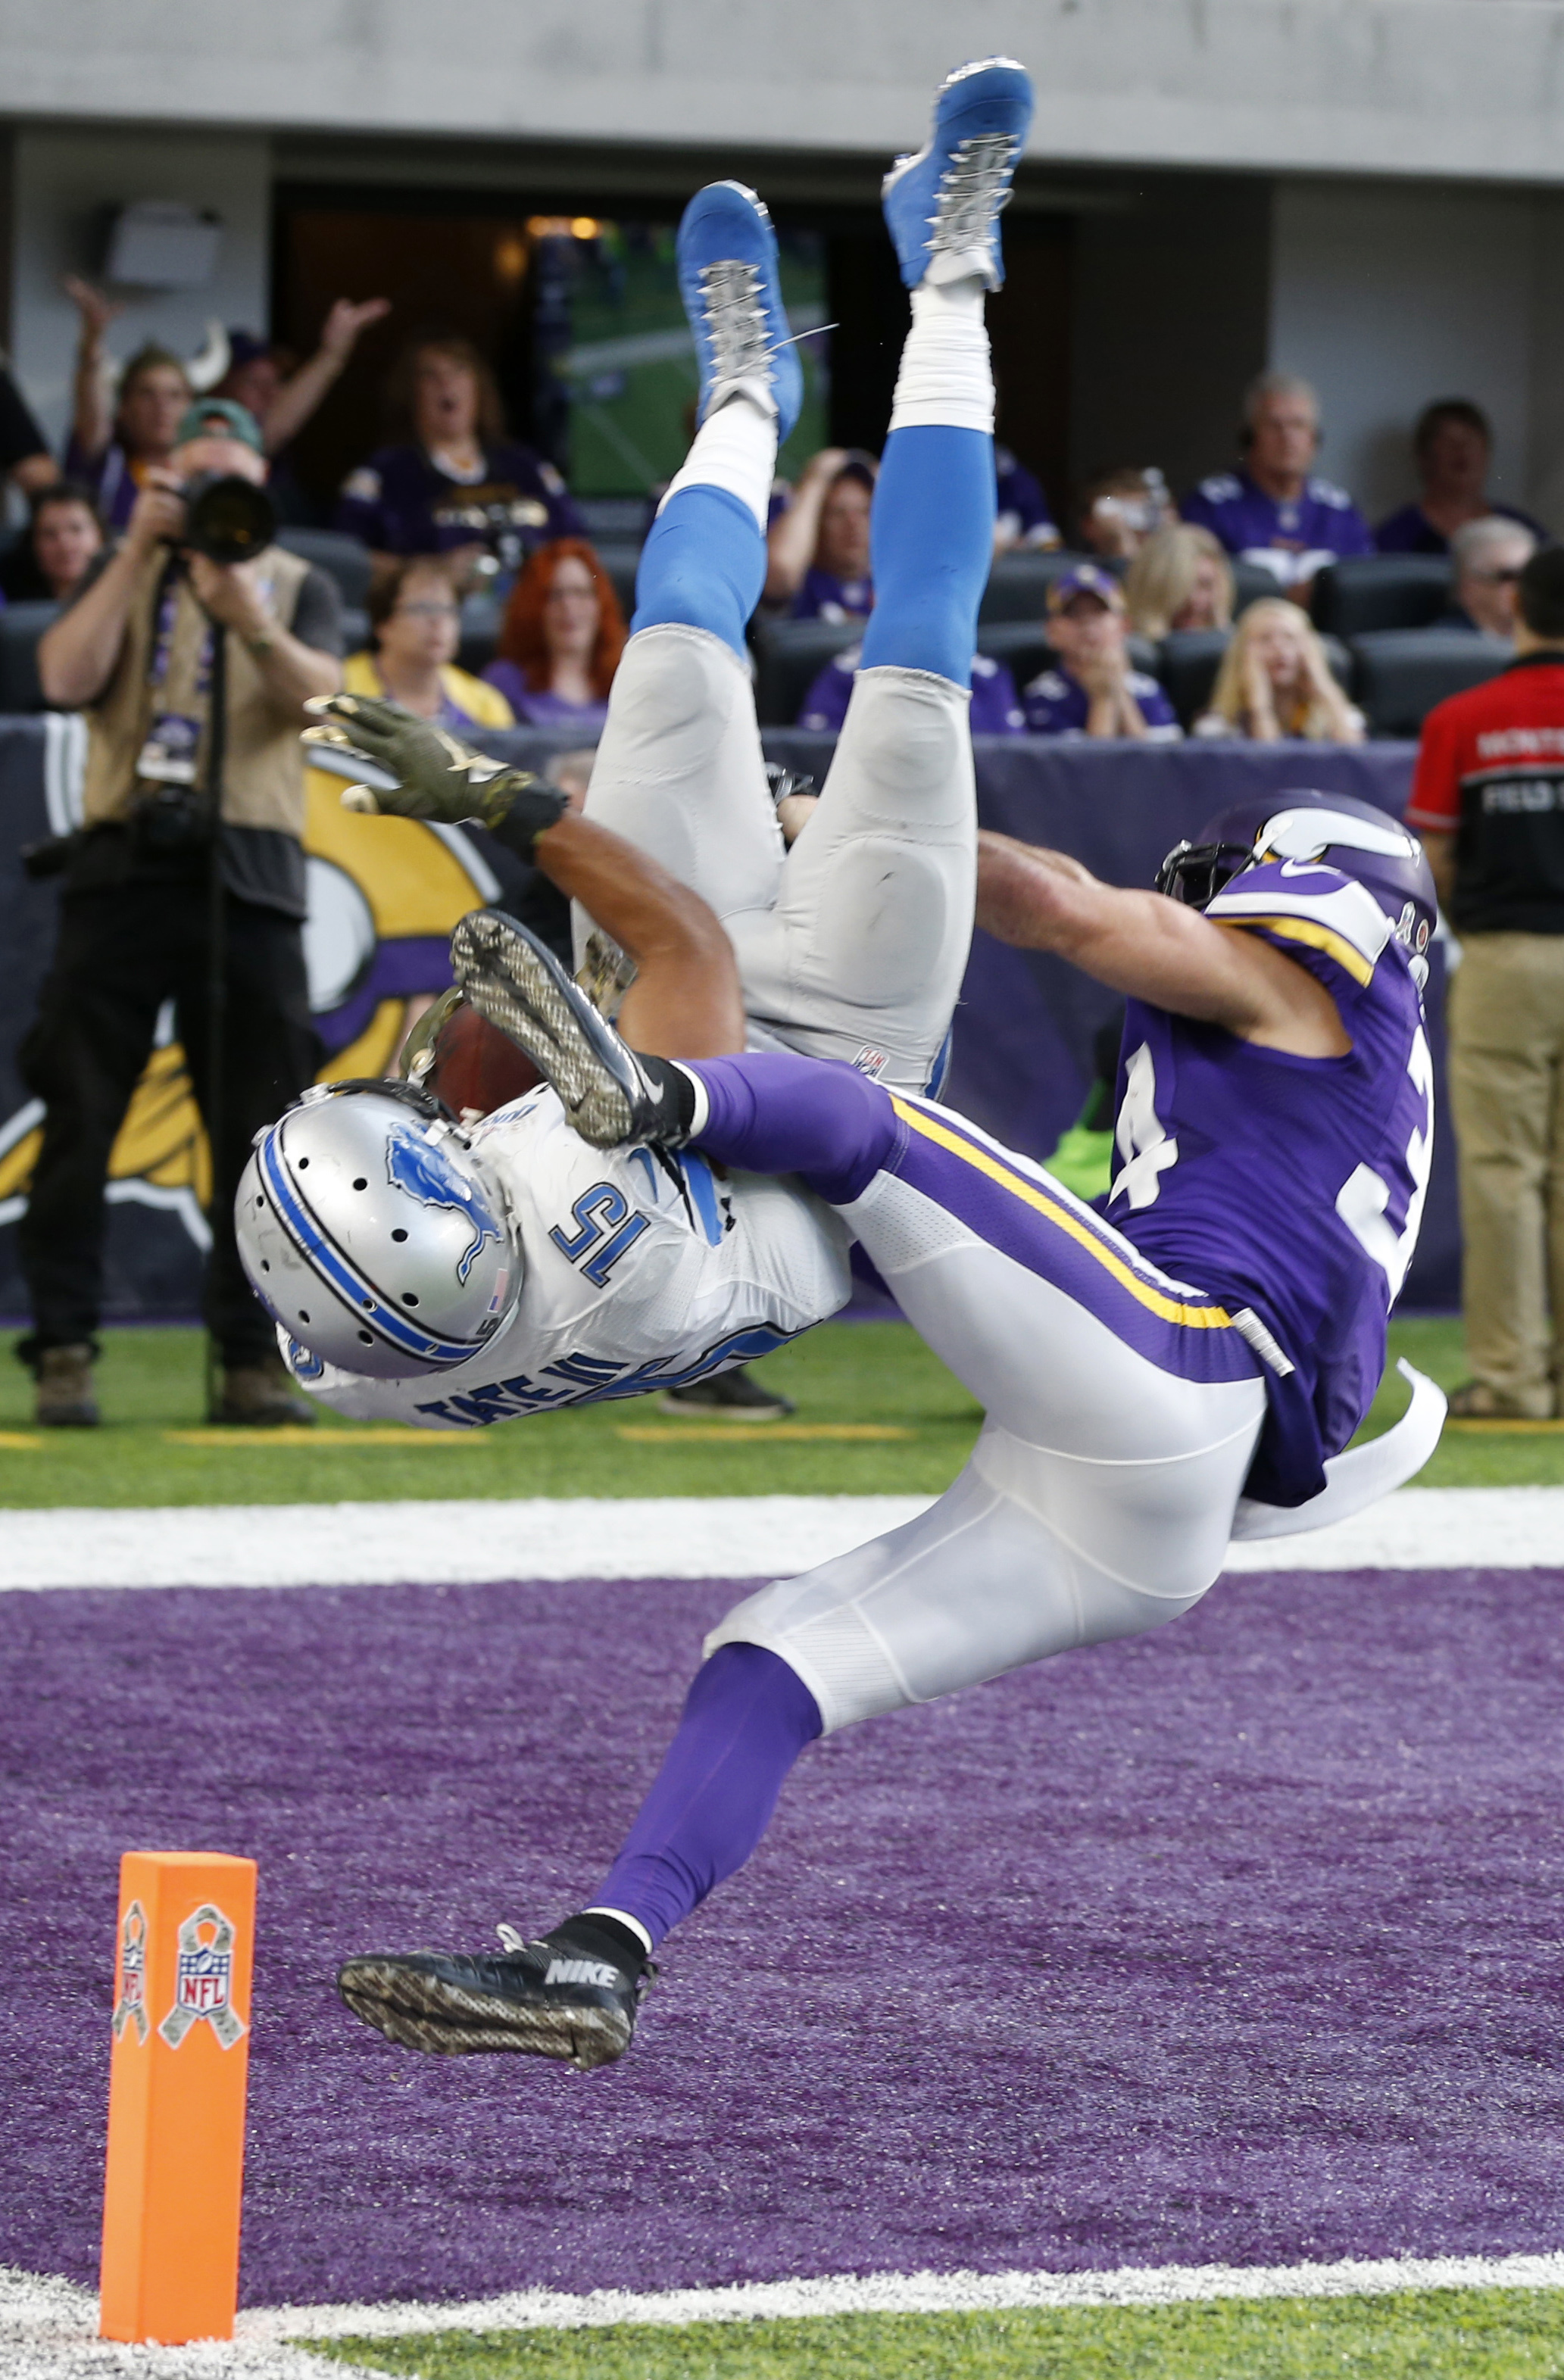 Detroit Lions wide receiver Golden Tate (15) flips into the end zone in front of Minnesota Vikings strong safety Andrew Sendejo, right, after catching a 28-yard touchdown pass during overtime in an NFL football game, Sunday, Nov. 6, 2016, in Minneapolis.